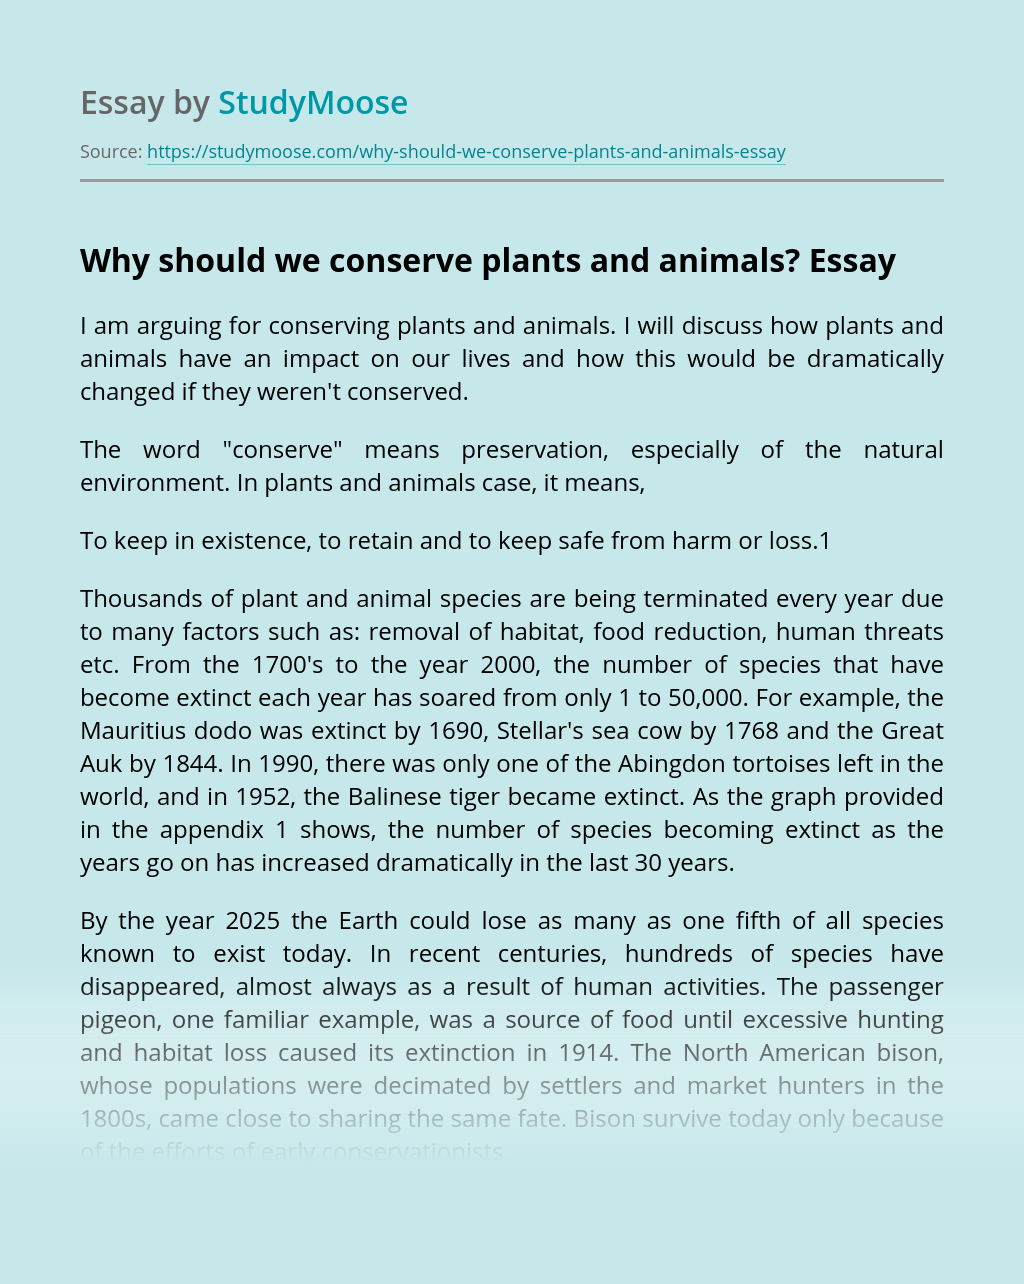 Why should we conserve plants and animals?